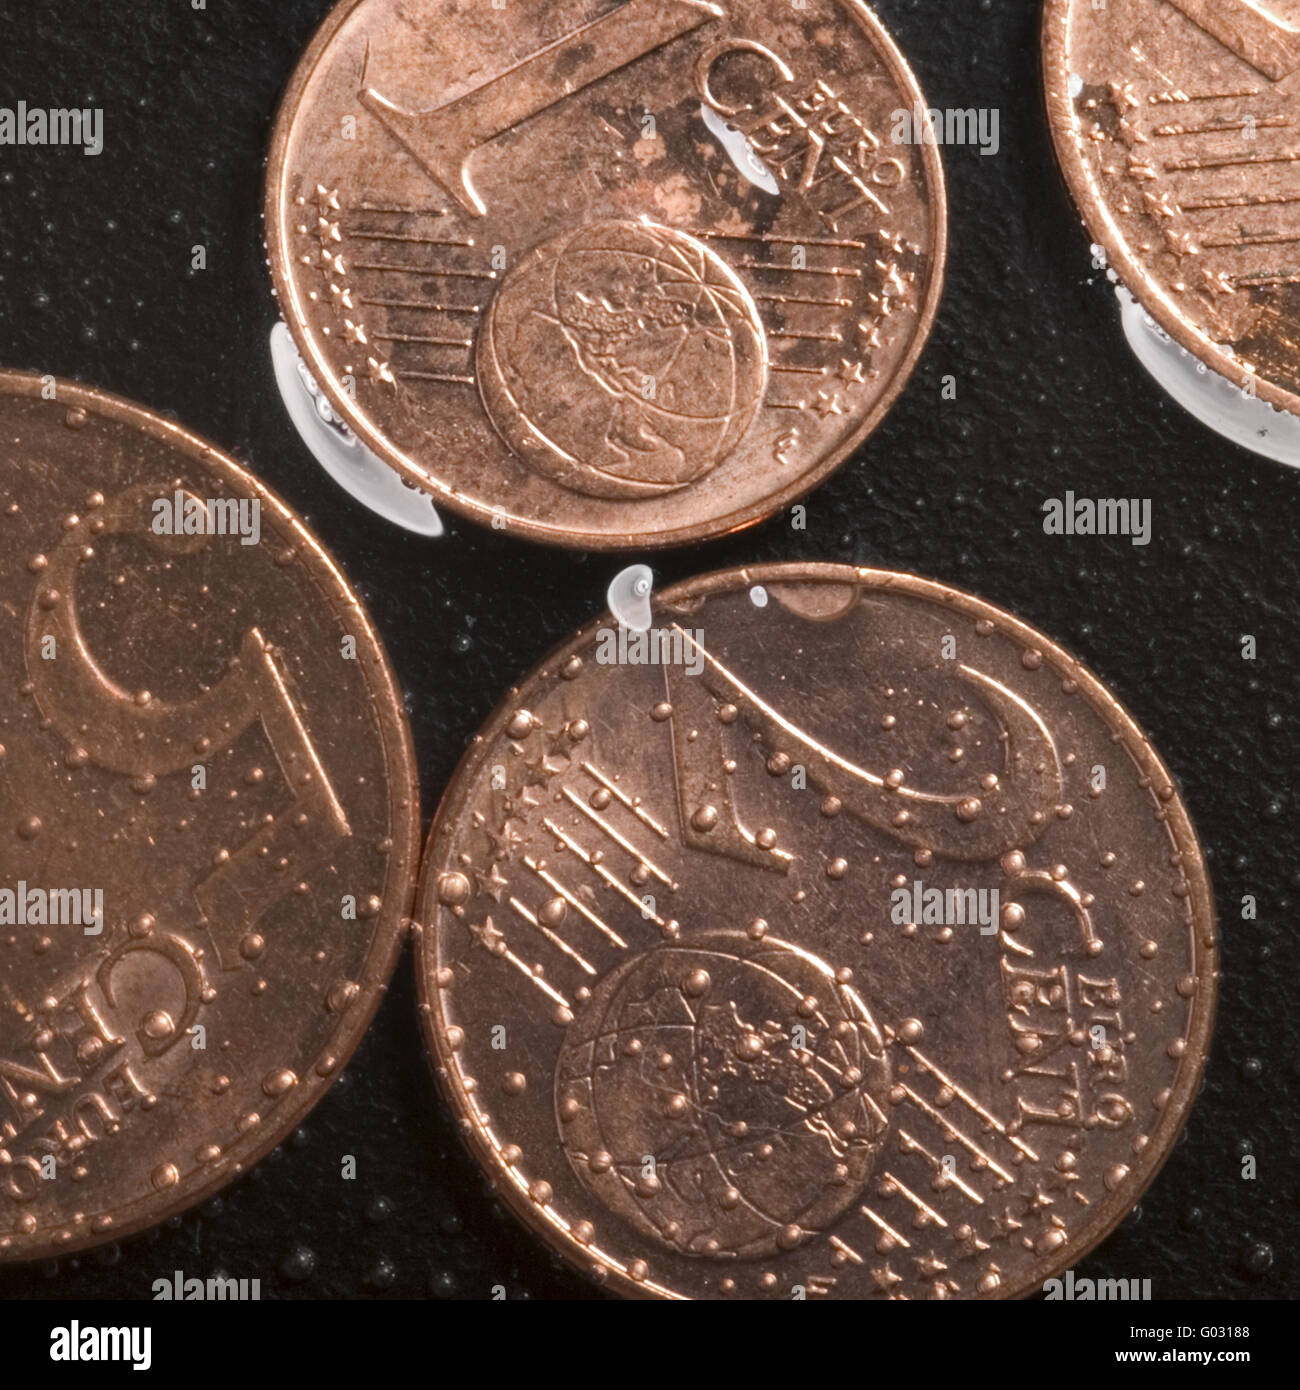 Euro coins in water - Stock Image